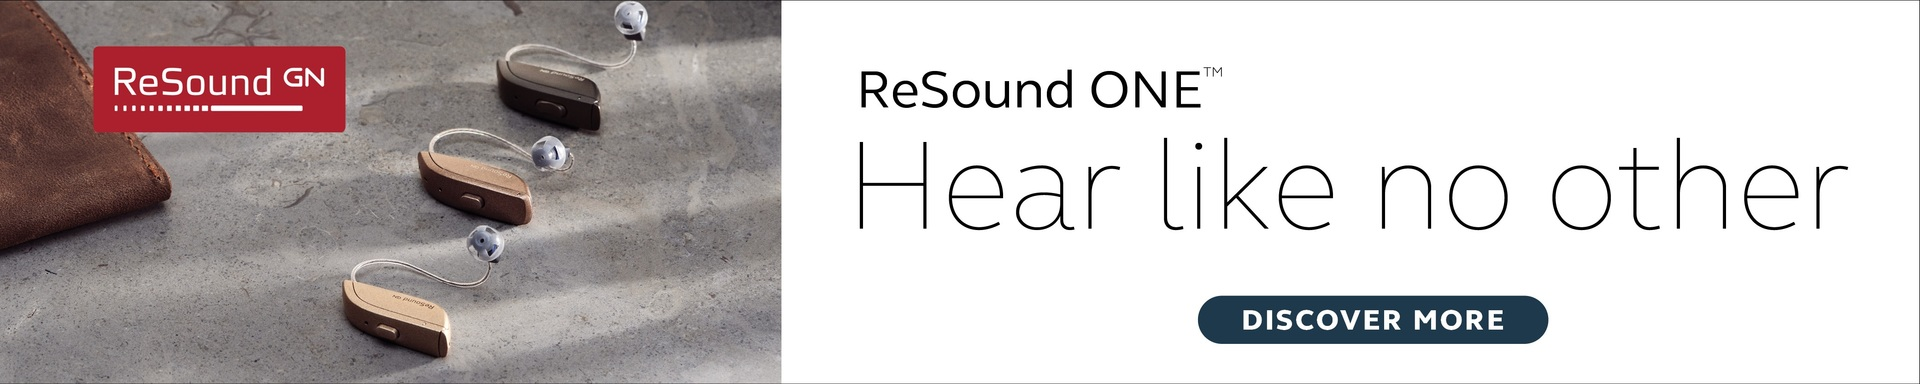 ReSound ONE - Discover - September 2020